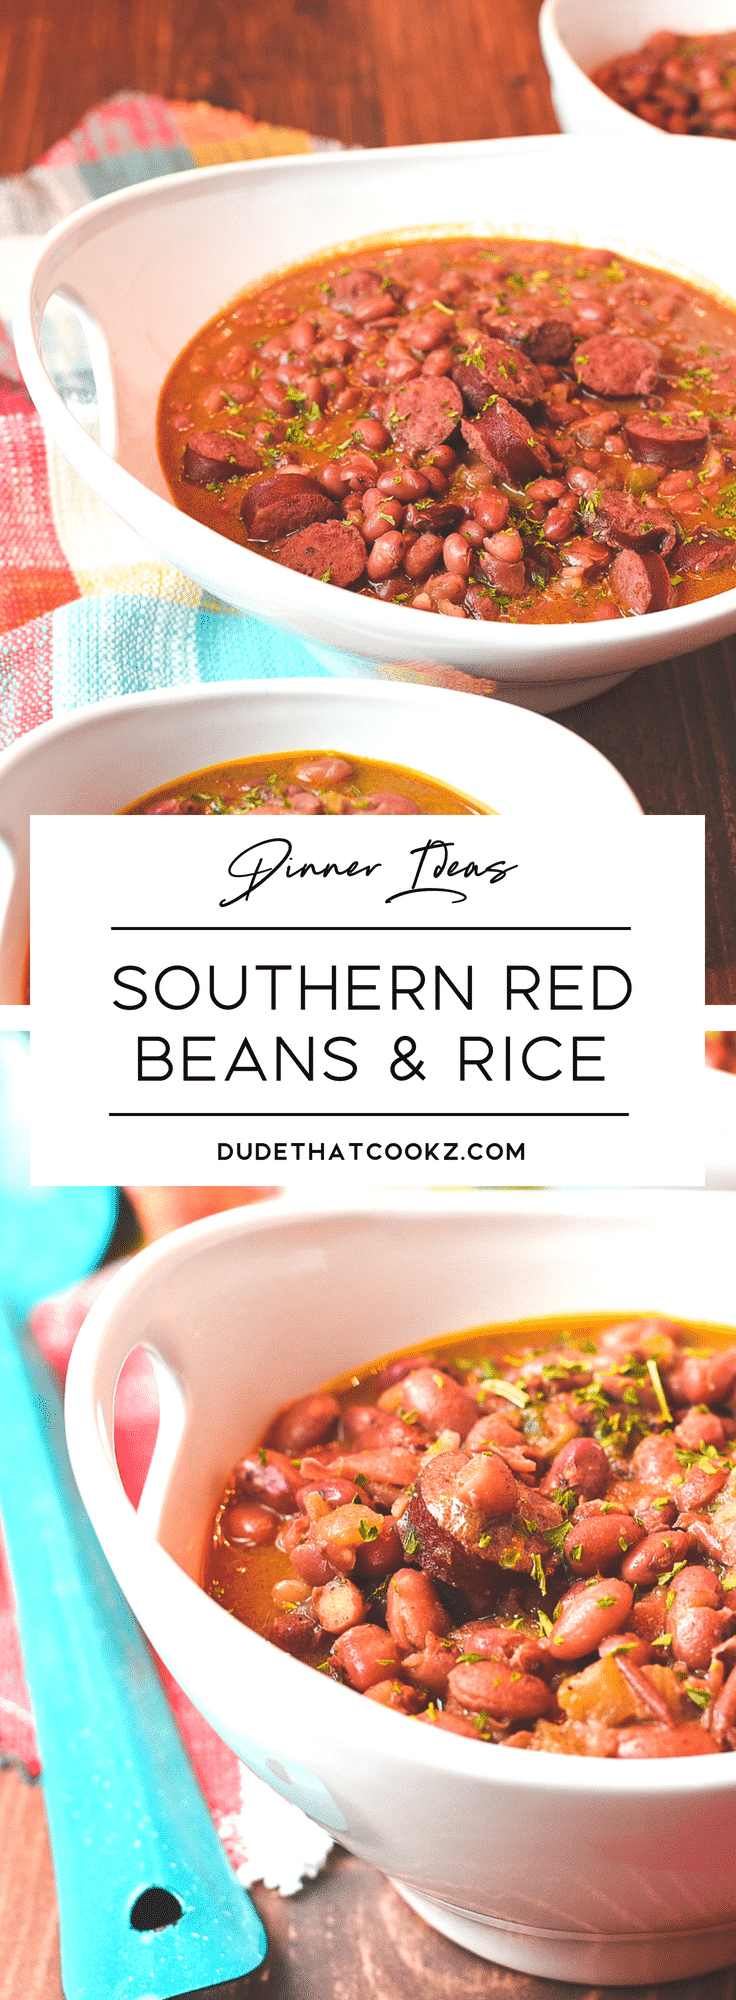 Southern Red Beans & Rice | Dude That Cookz